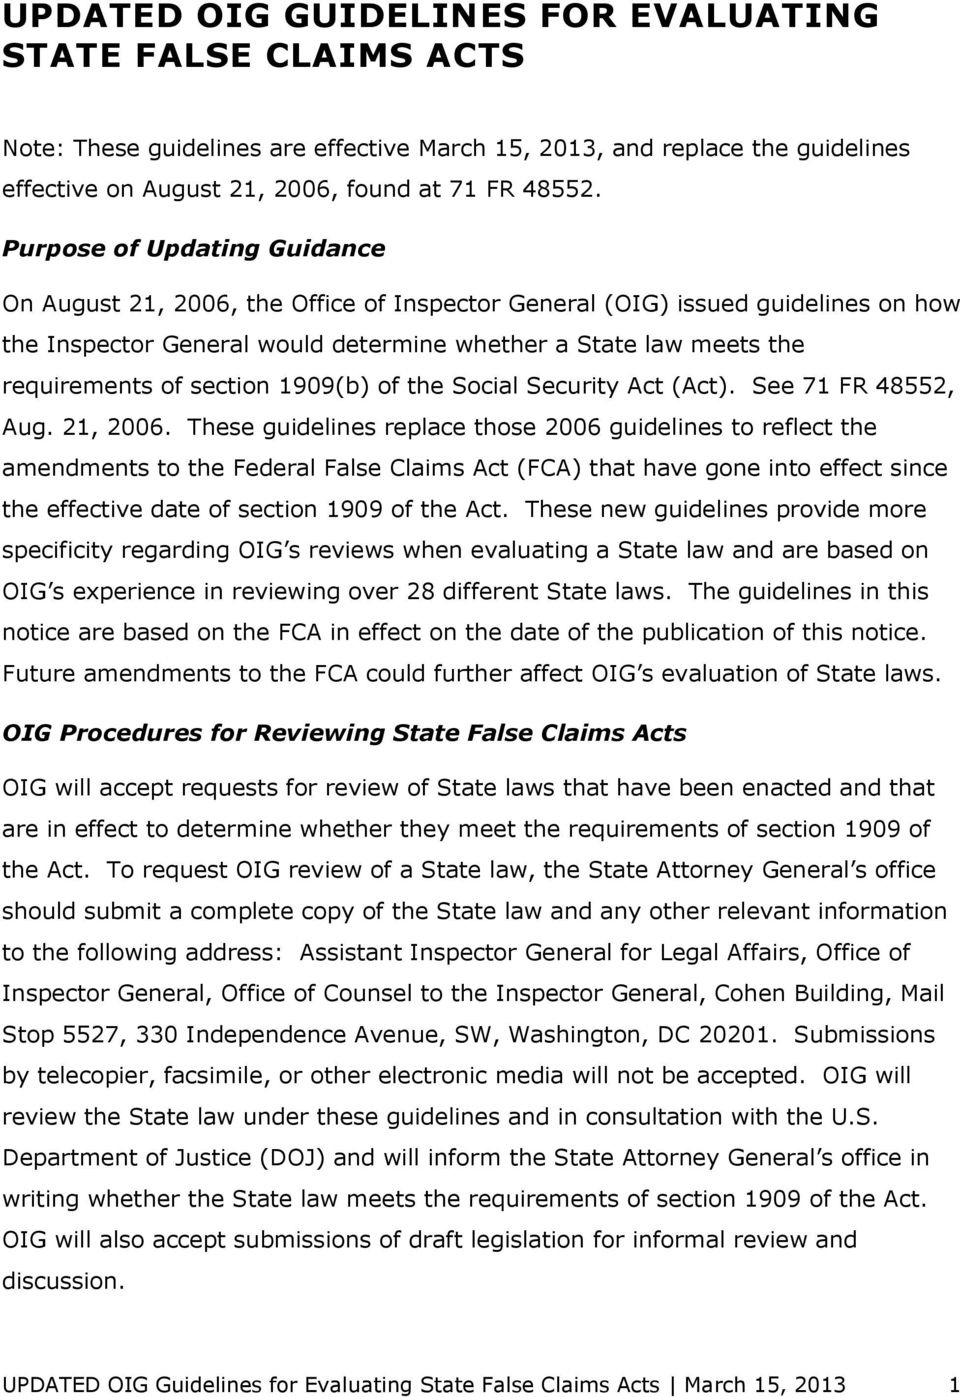 section 1909(b) of the Social Security Act (Act). See 71 FR 48552, Aug. 21, 2006.